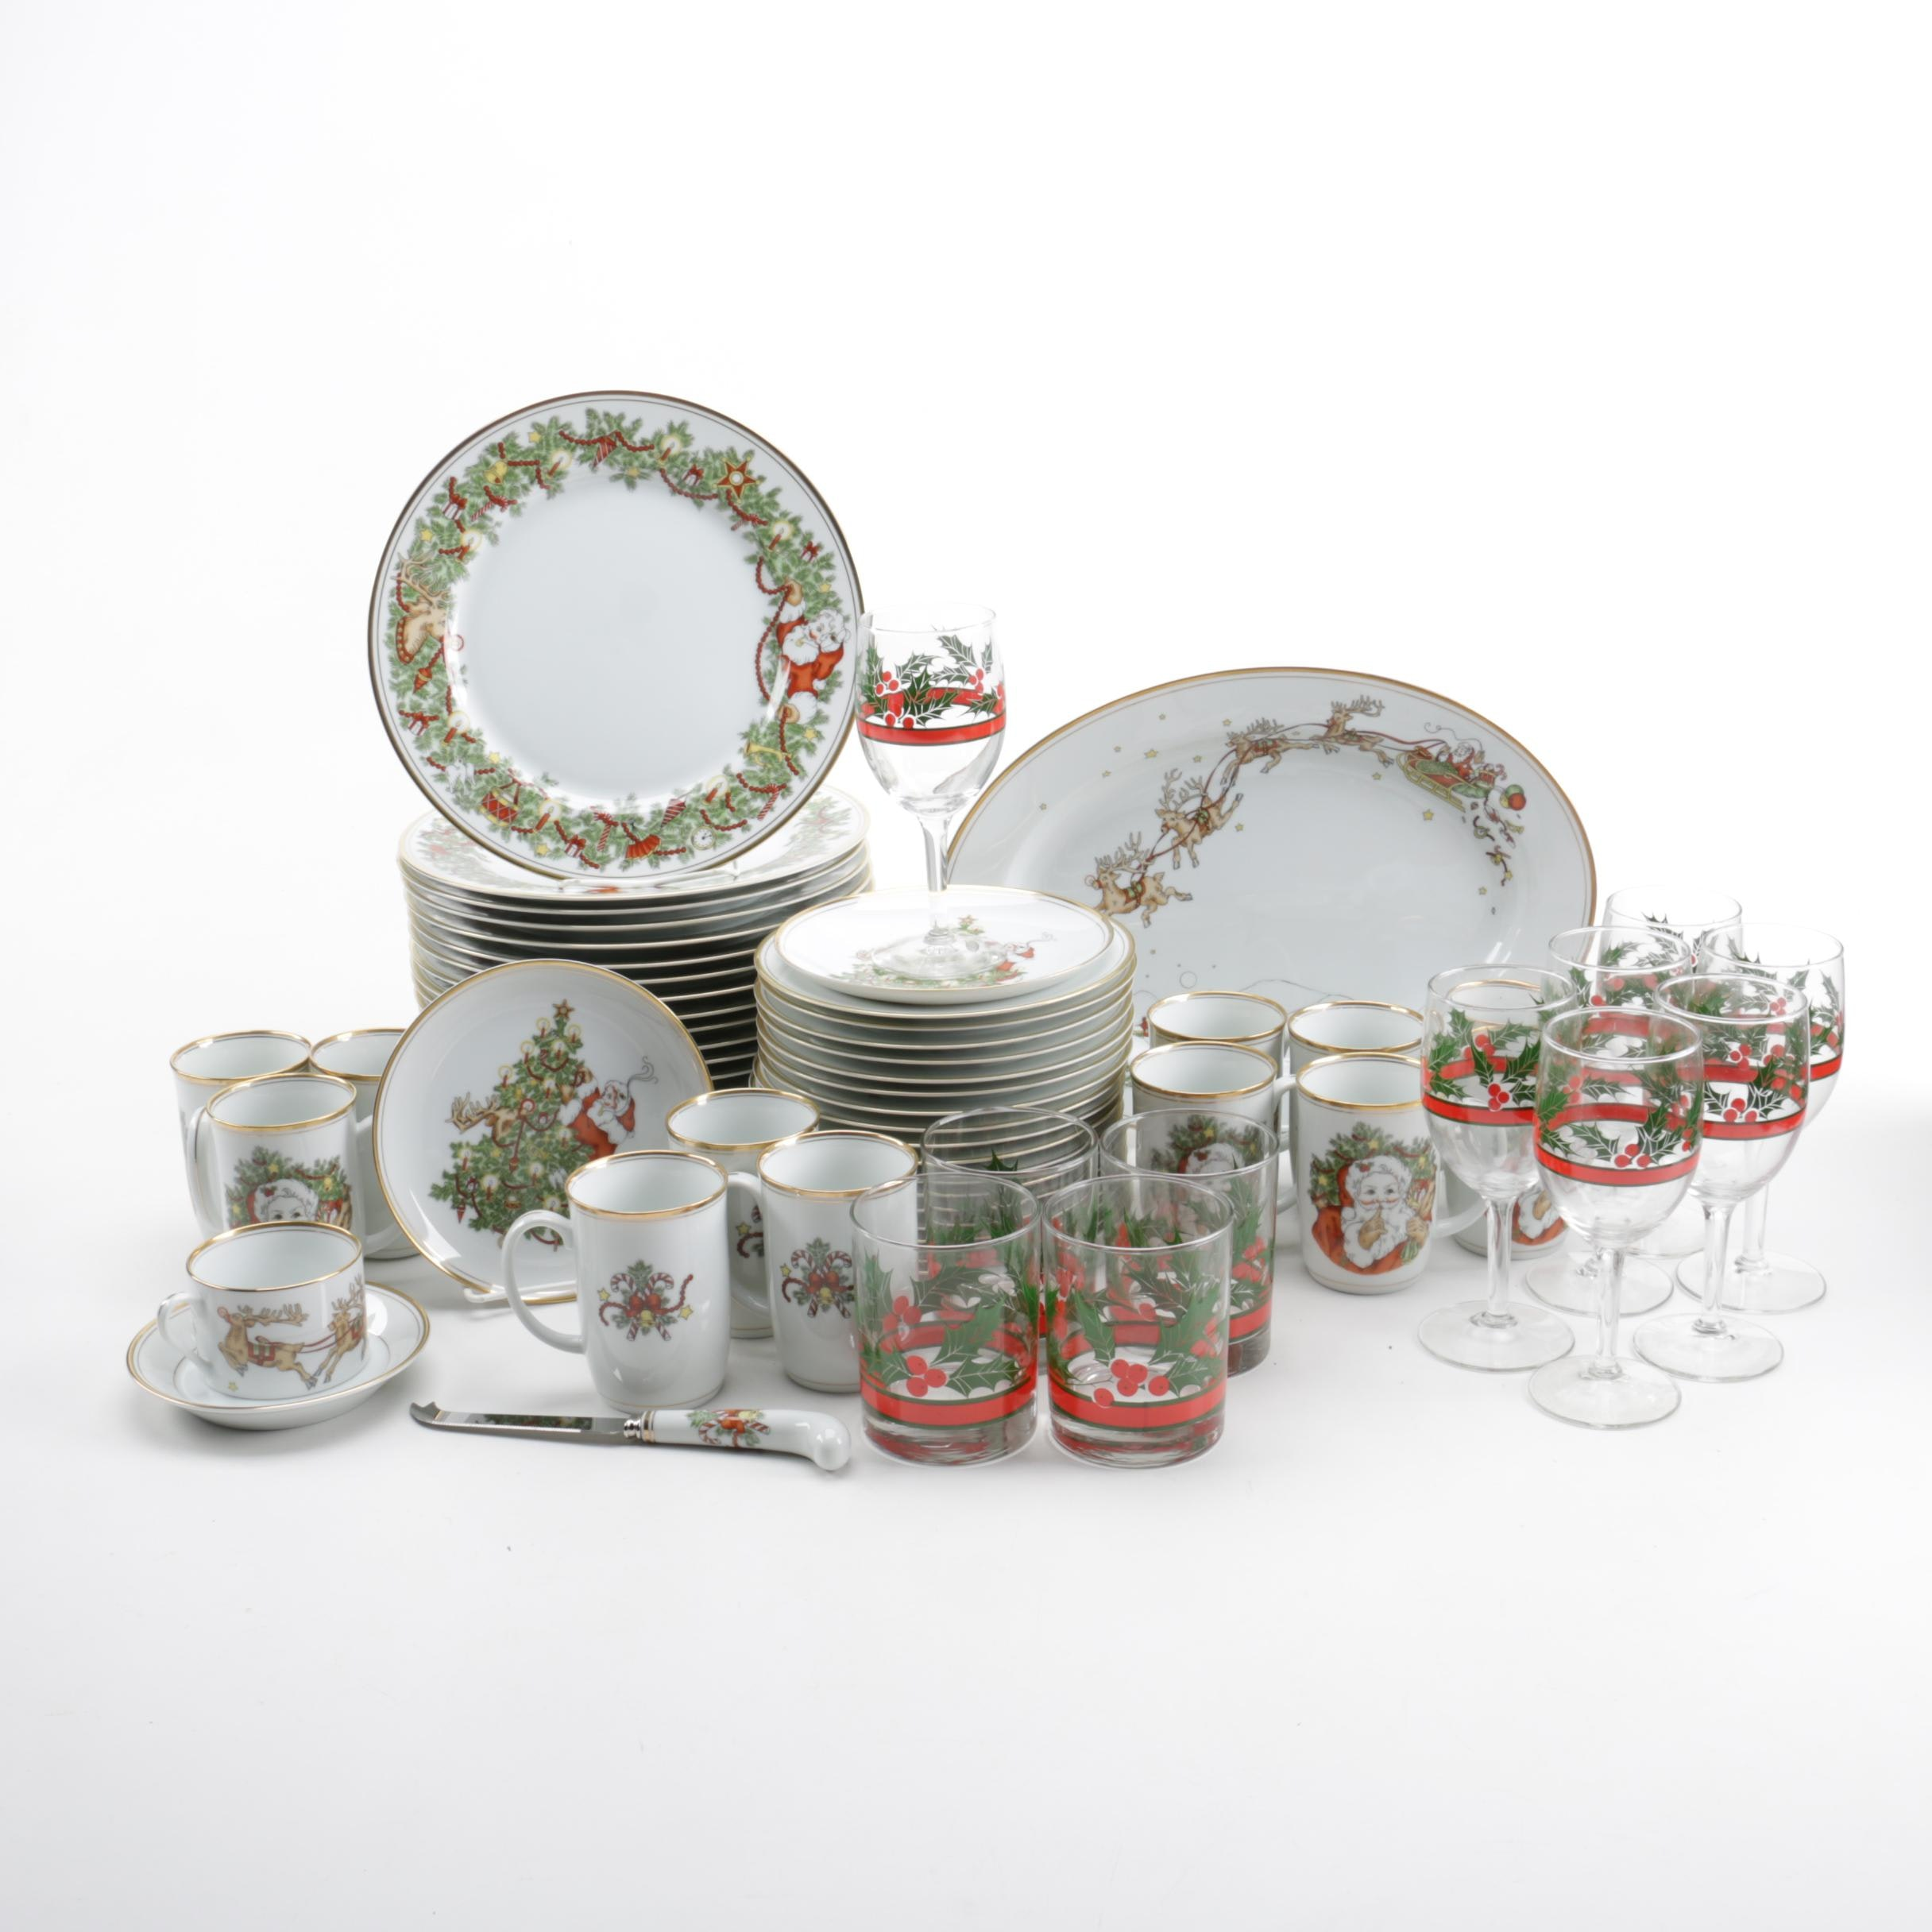 Holiday Themed Tableware Including Fitz and Floyd